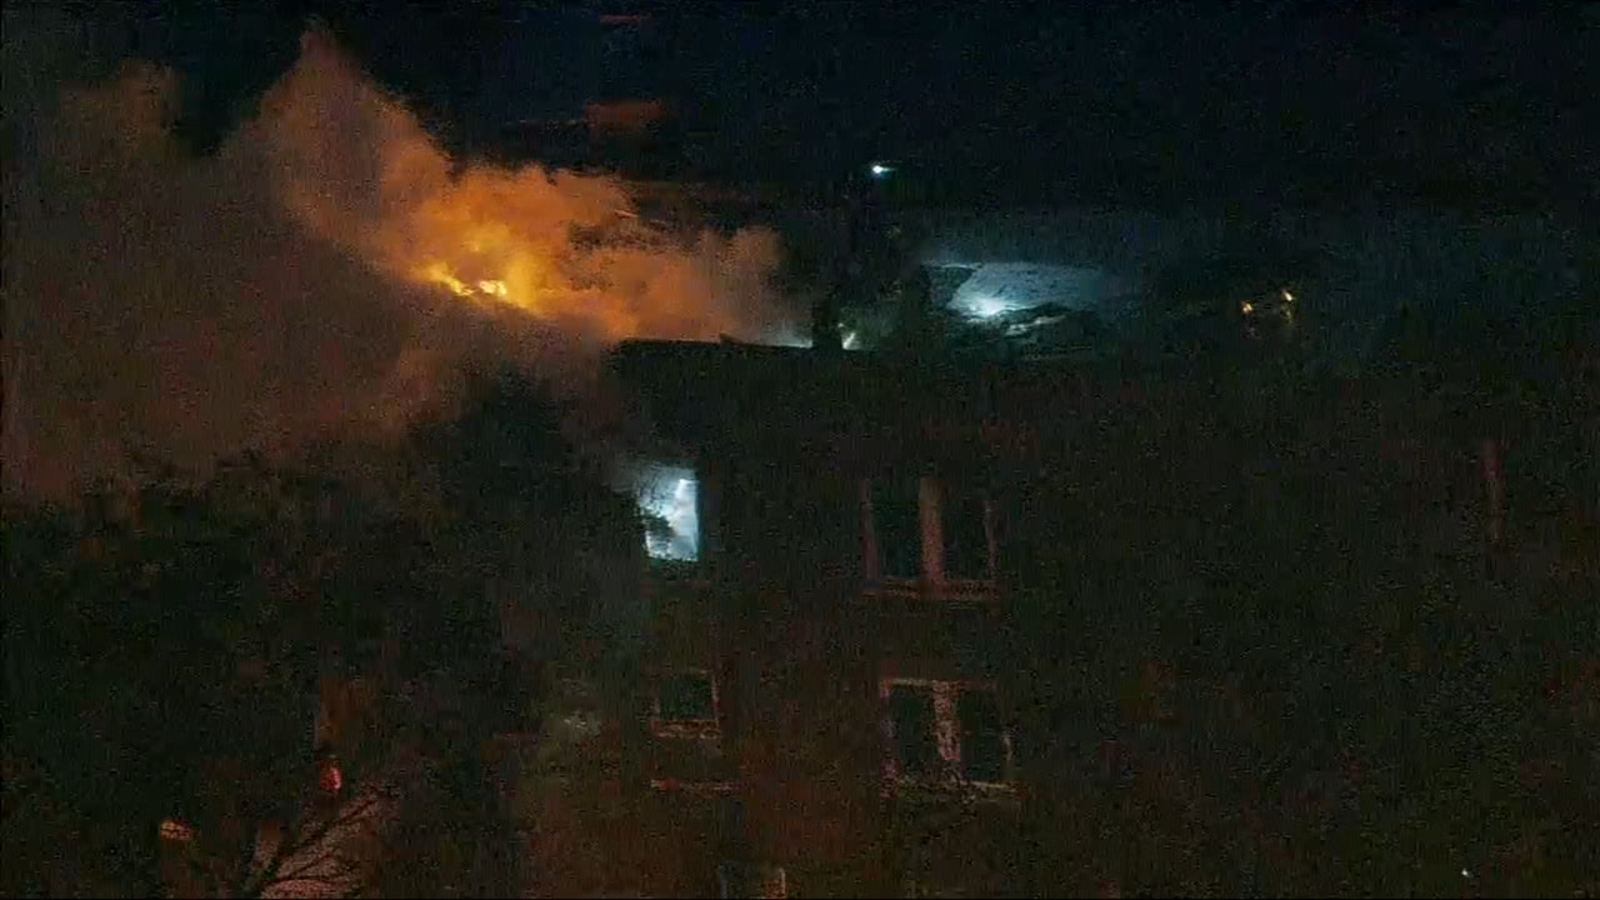 Firefighters battle blaze in North Austin apartment building - WLS-TV